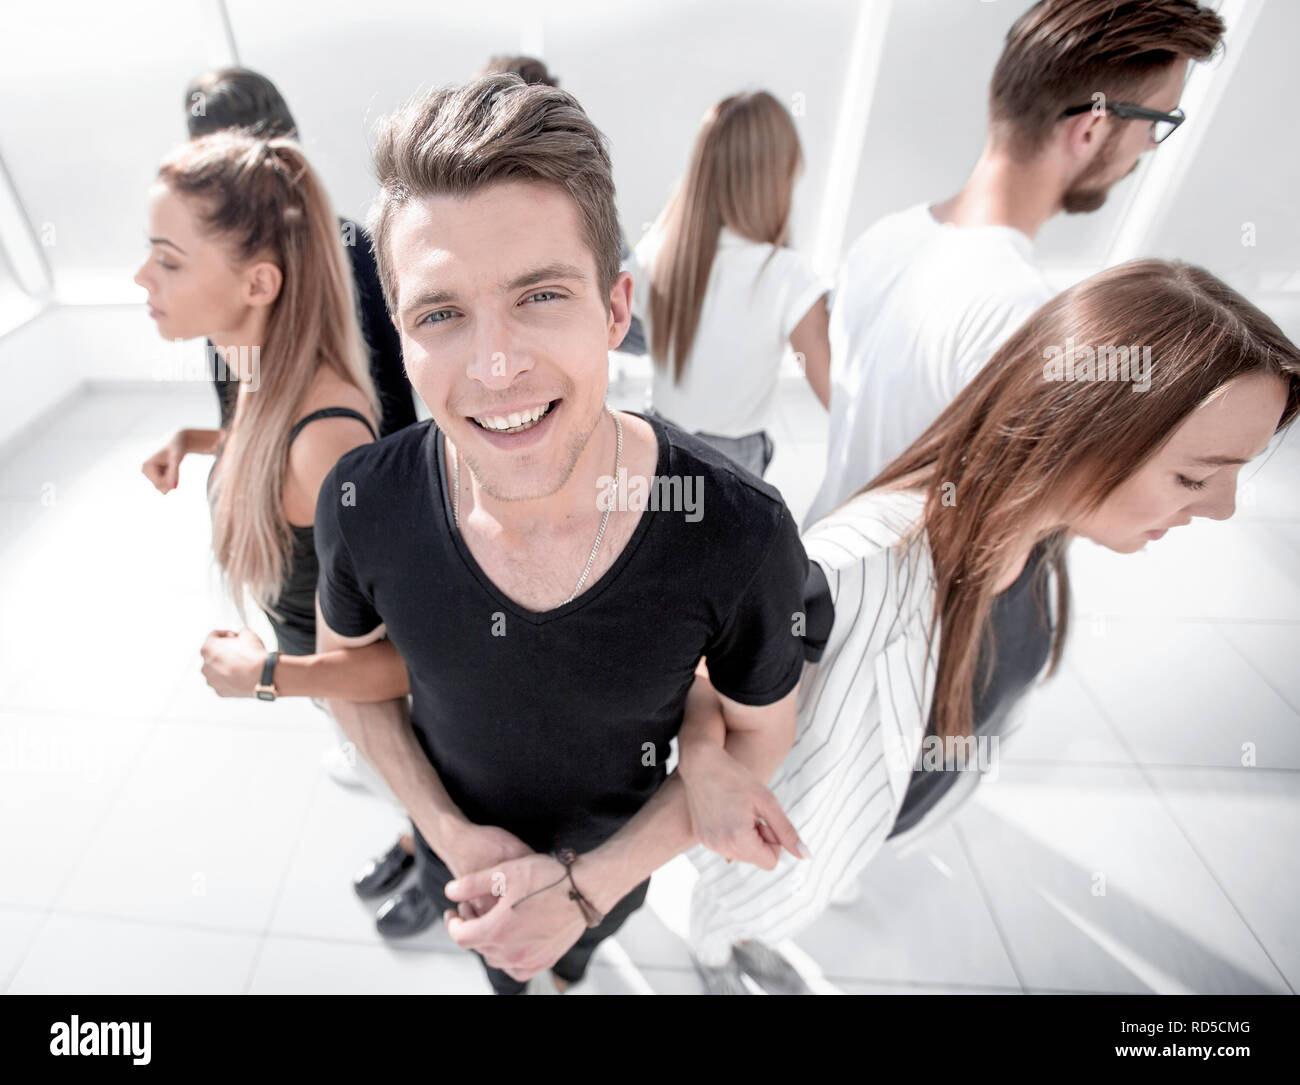 guy standing in a circle with his team - Stock Image